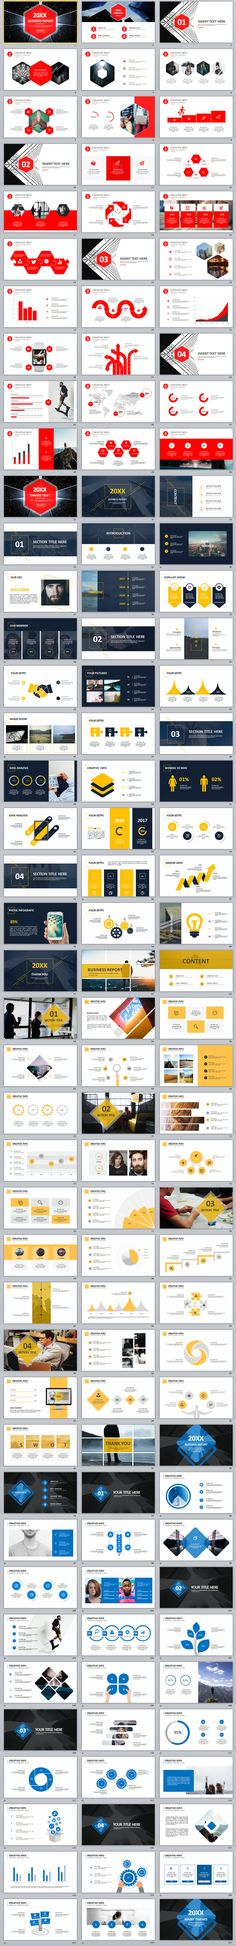 4 in 1 company year cool introduction PowerPoint templa on Behance #powerpoint #templates #presentation #animation #backgrounds #pptwork.com #annual #report #business #company #design #creative #slide #infographic #chart #themes #ppt #pptx #slideshow